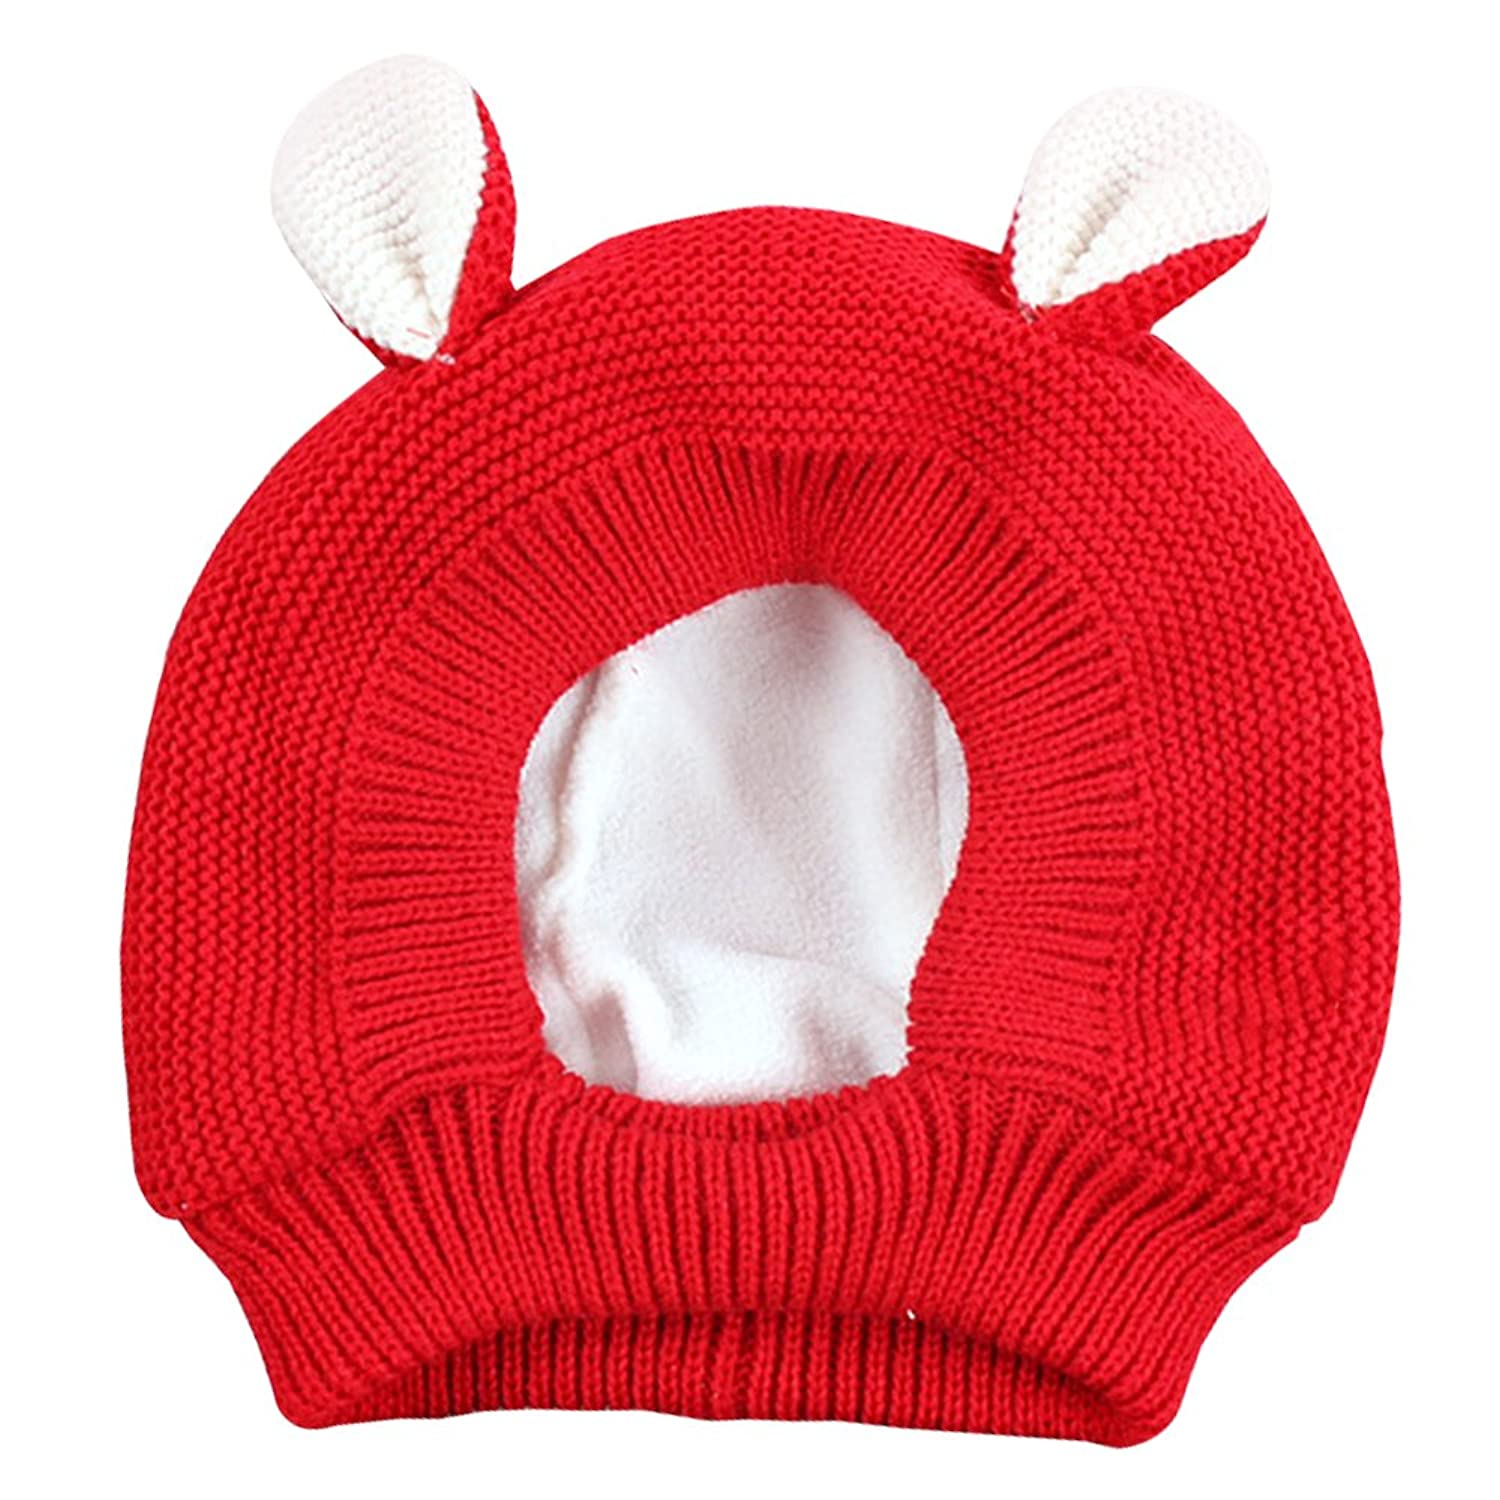 f18268d0922 KINDOYO Baby Boy s Girl s Winter Warm Hooded Scarf Earflap Knitted Hat  Rabbit shape 1-3 Years Old